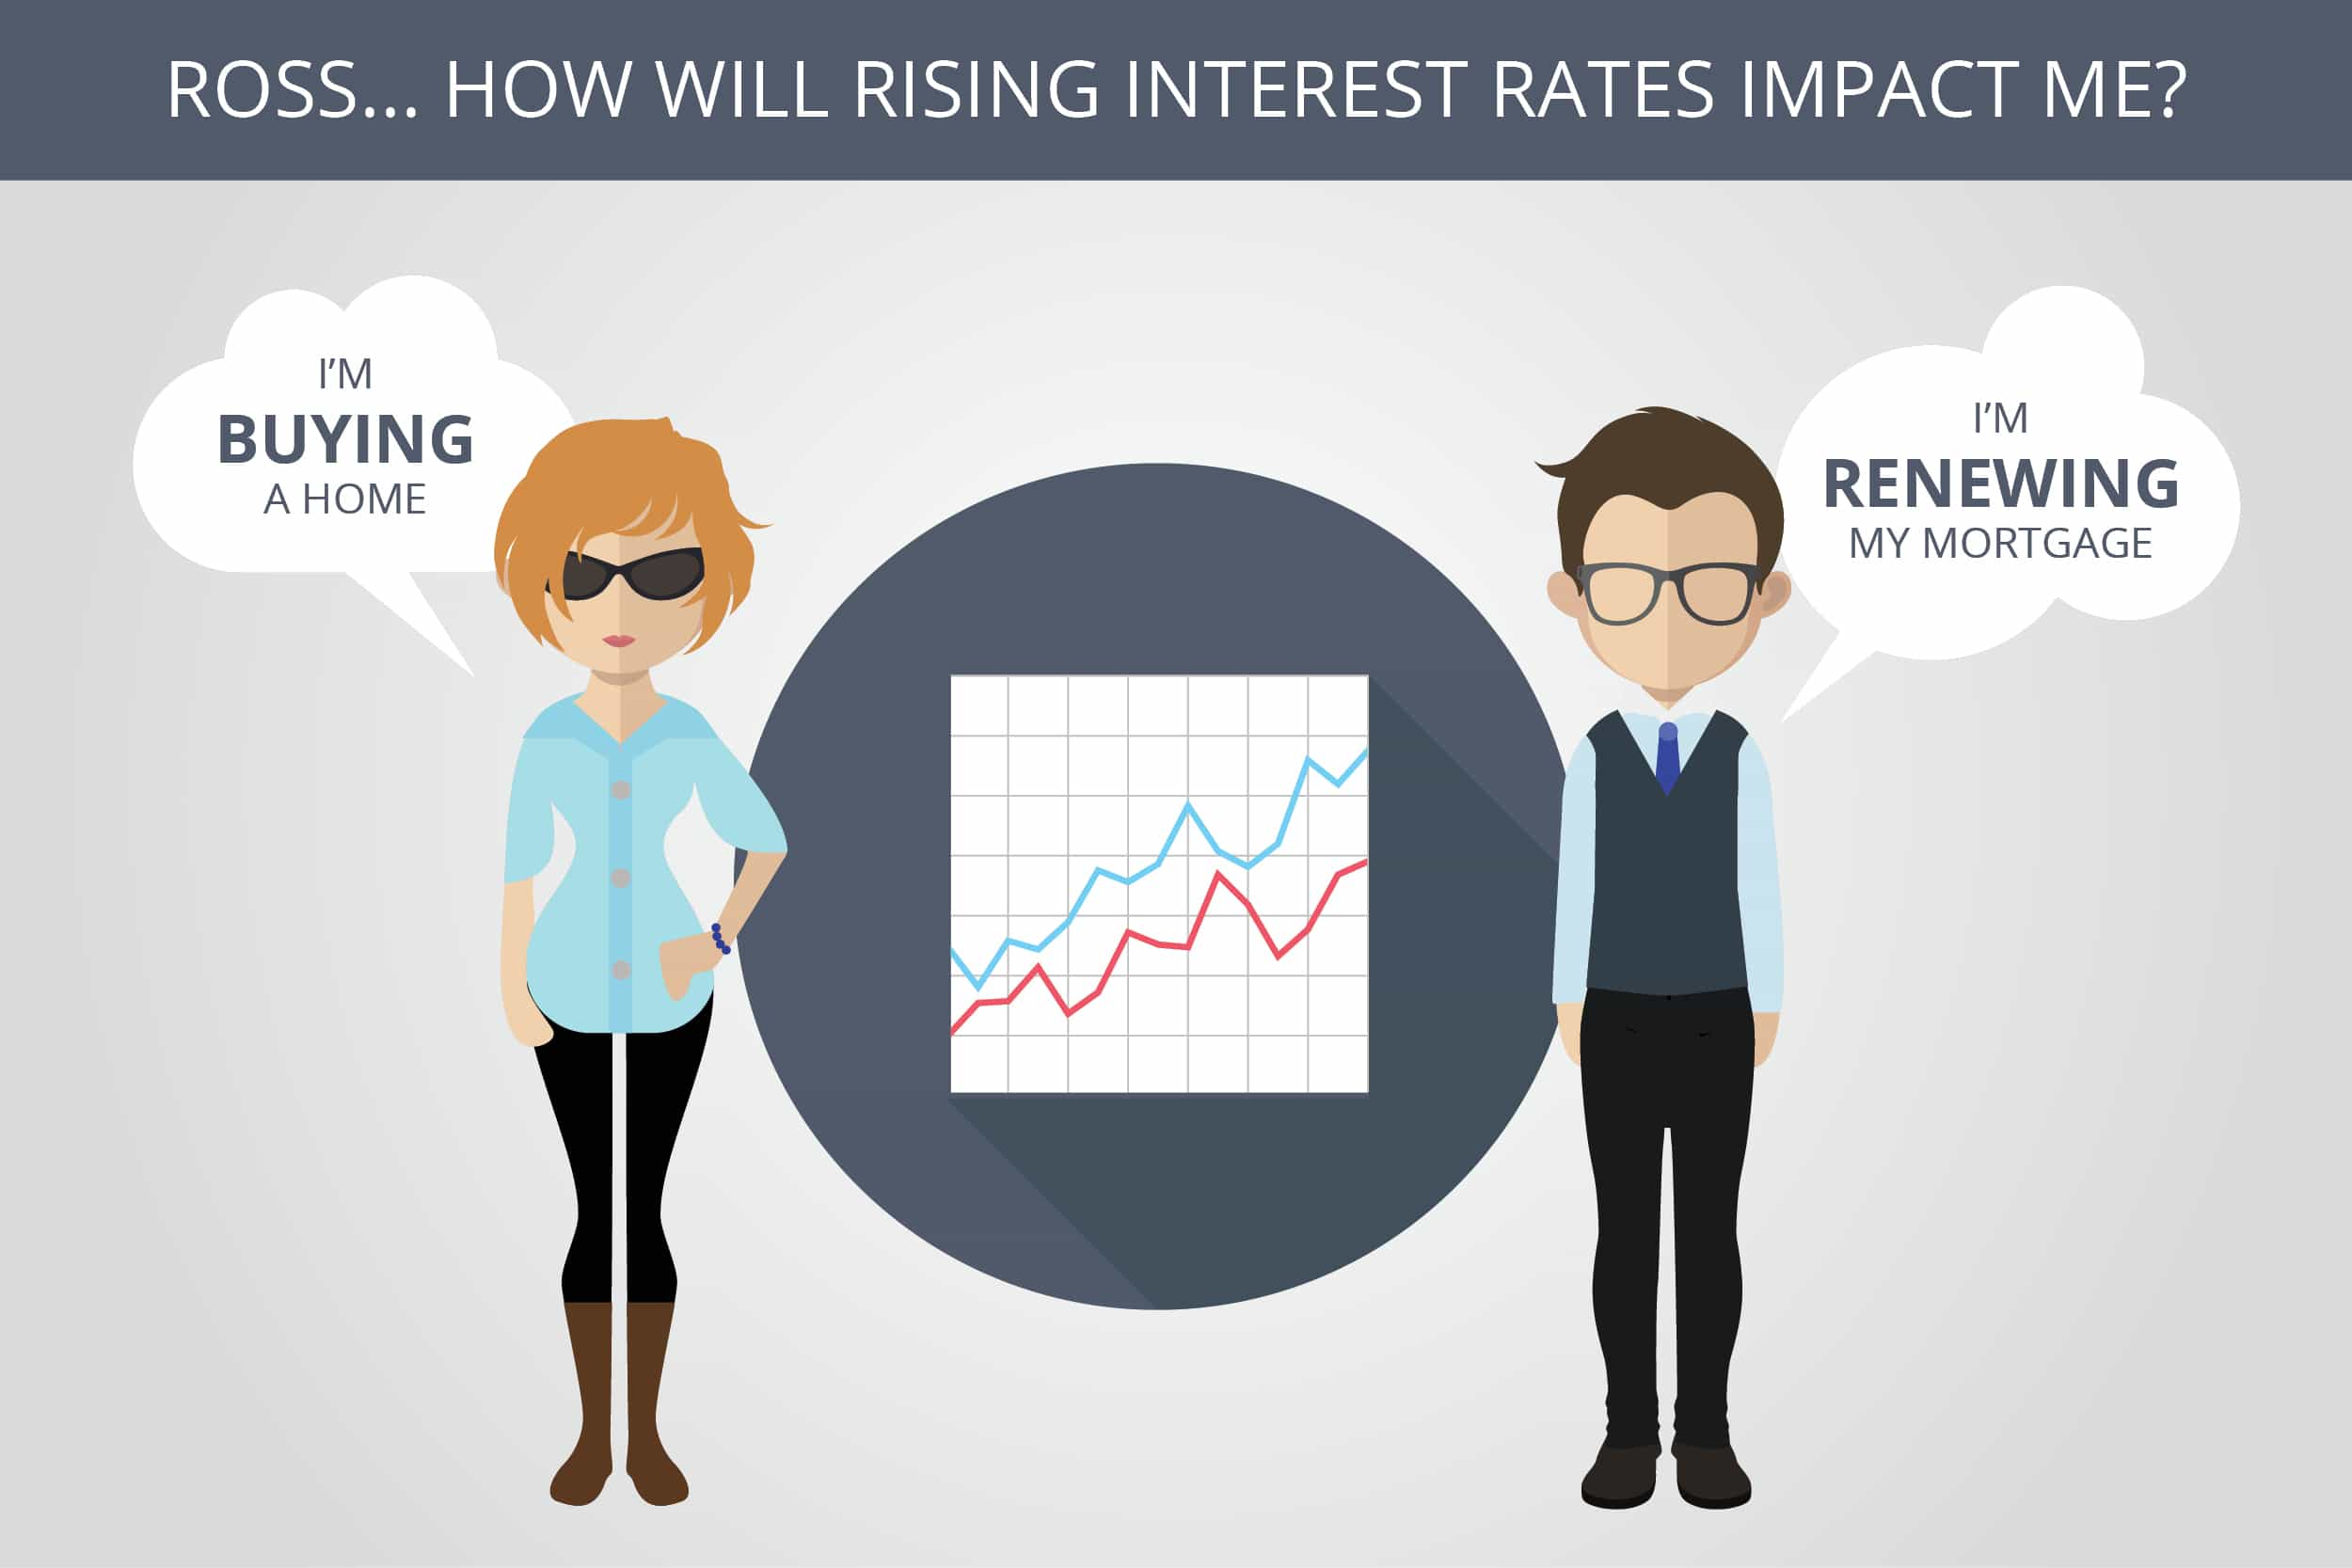 interest rates rising ask ross